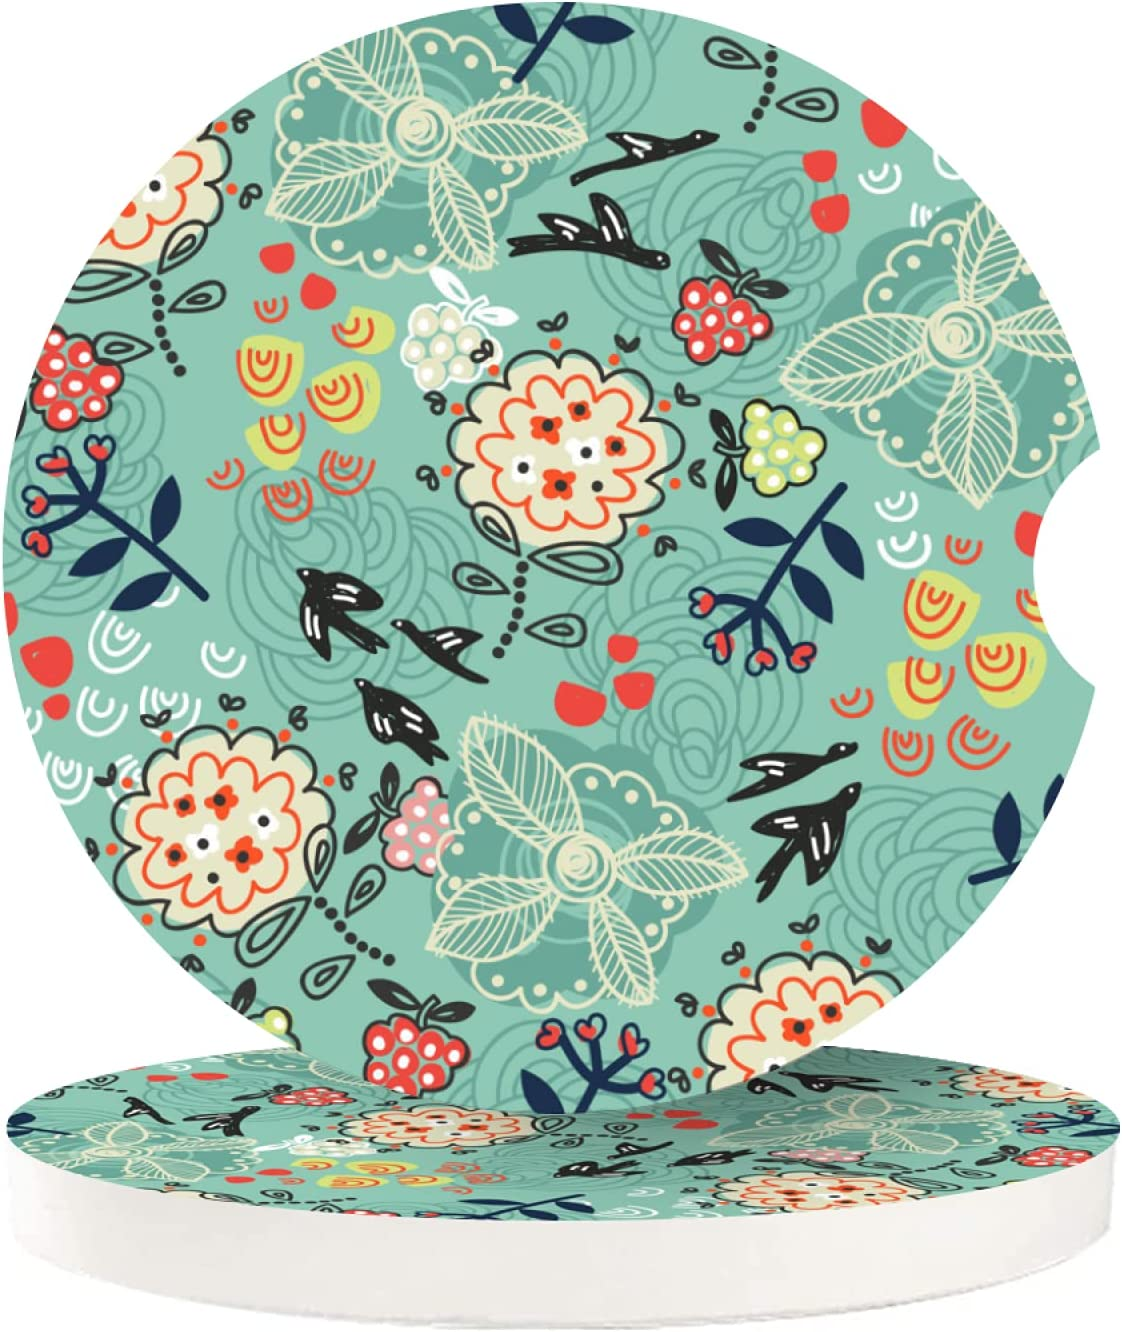 Cupholder Coaster for Your Car 2 Pack Abstract Flowers Plants and Birds On Teal Cork Car Cup Holder Insert Coasters for Drinks Absorbent Women Men Girls Auto Wood Beverage Coasters Set Cool